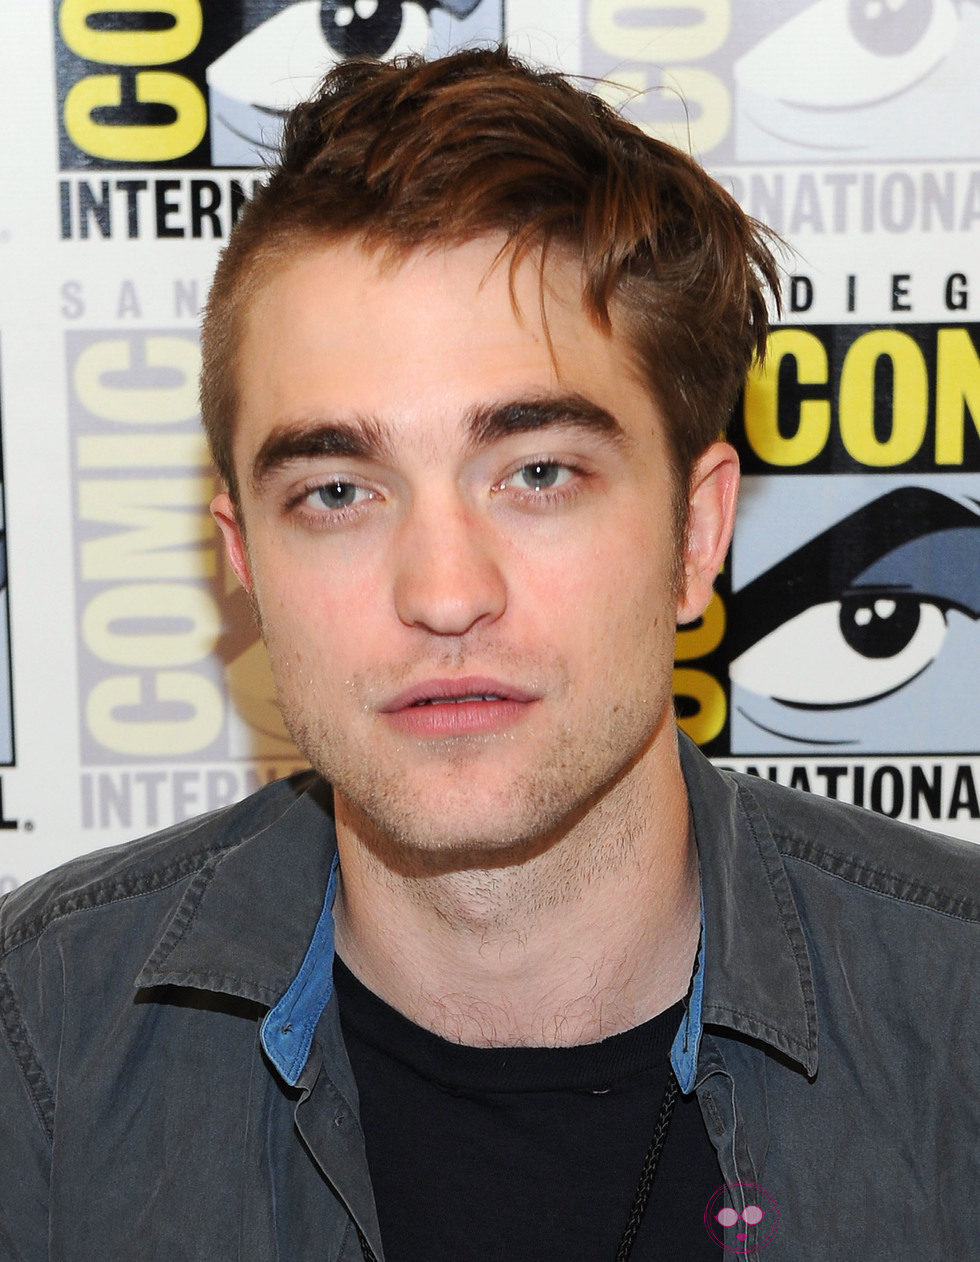 Robert Pattinson con media cabeza rapada